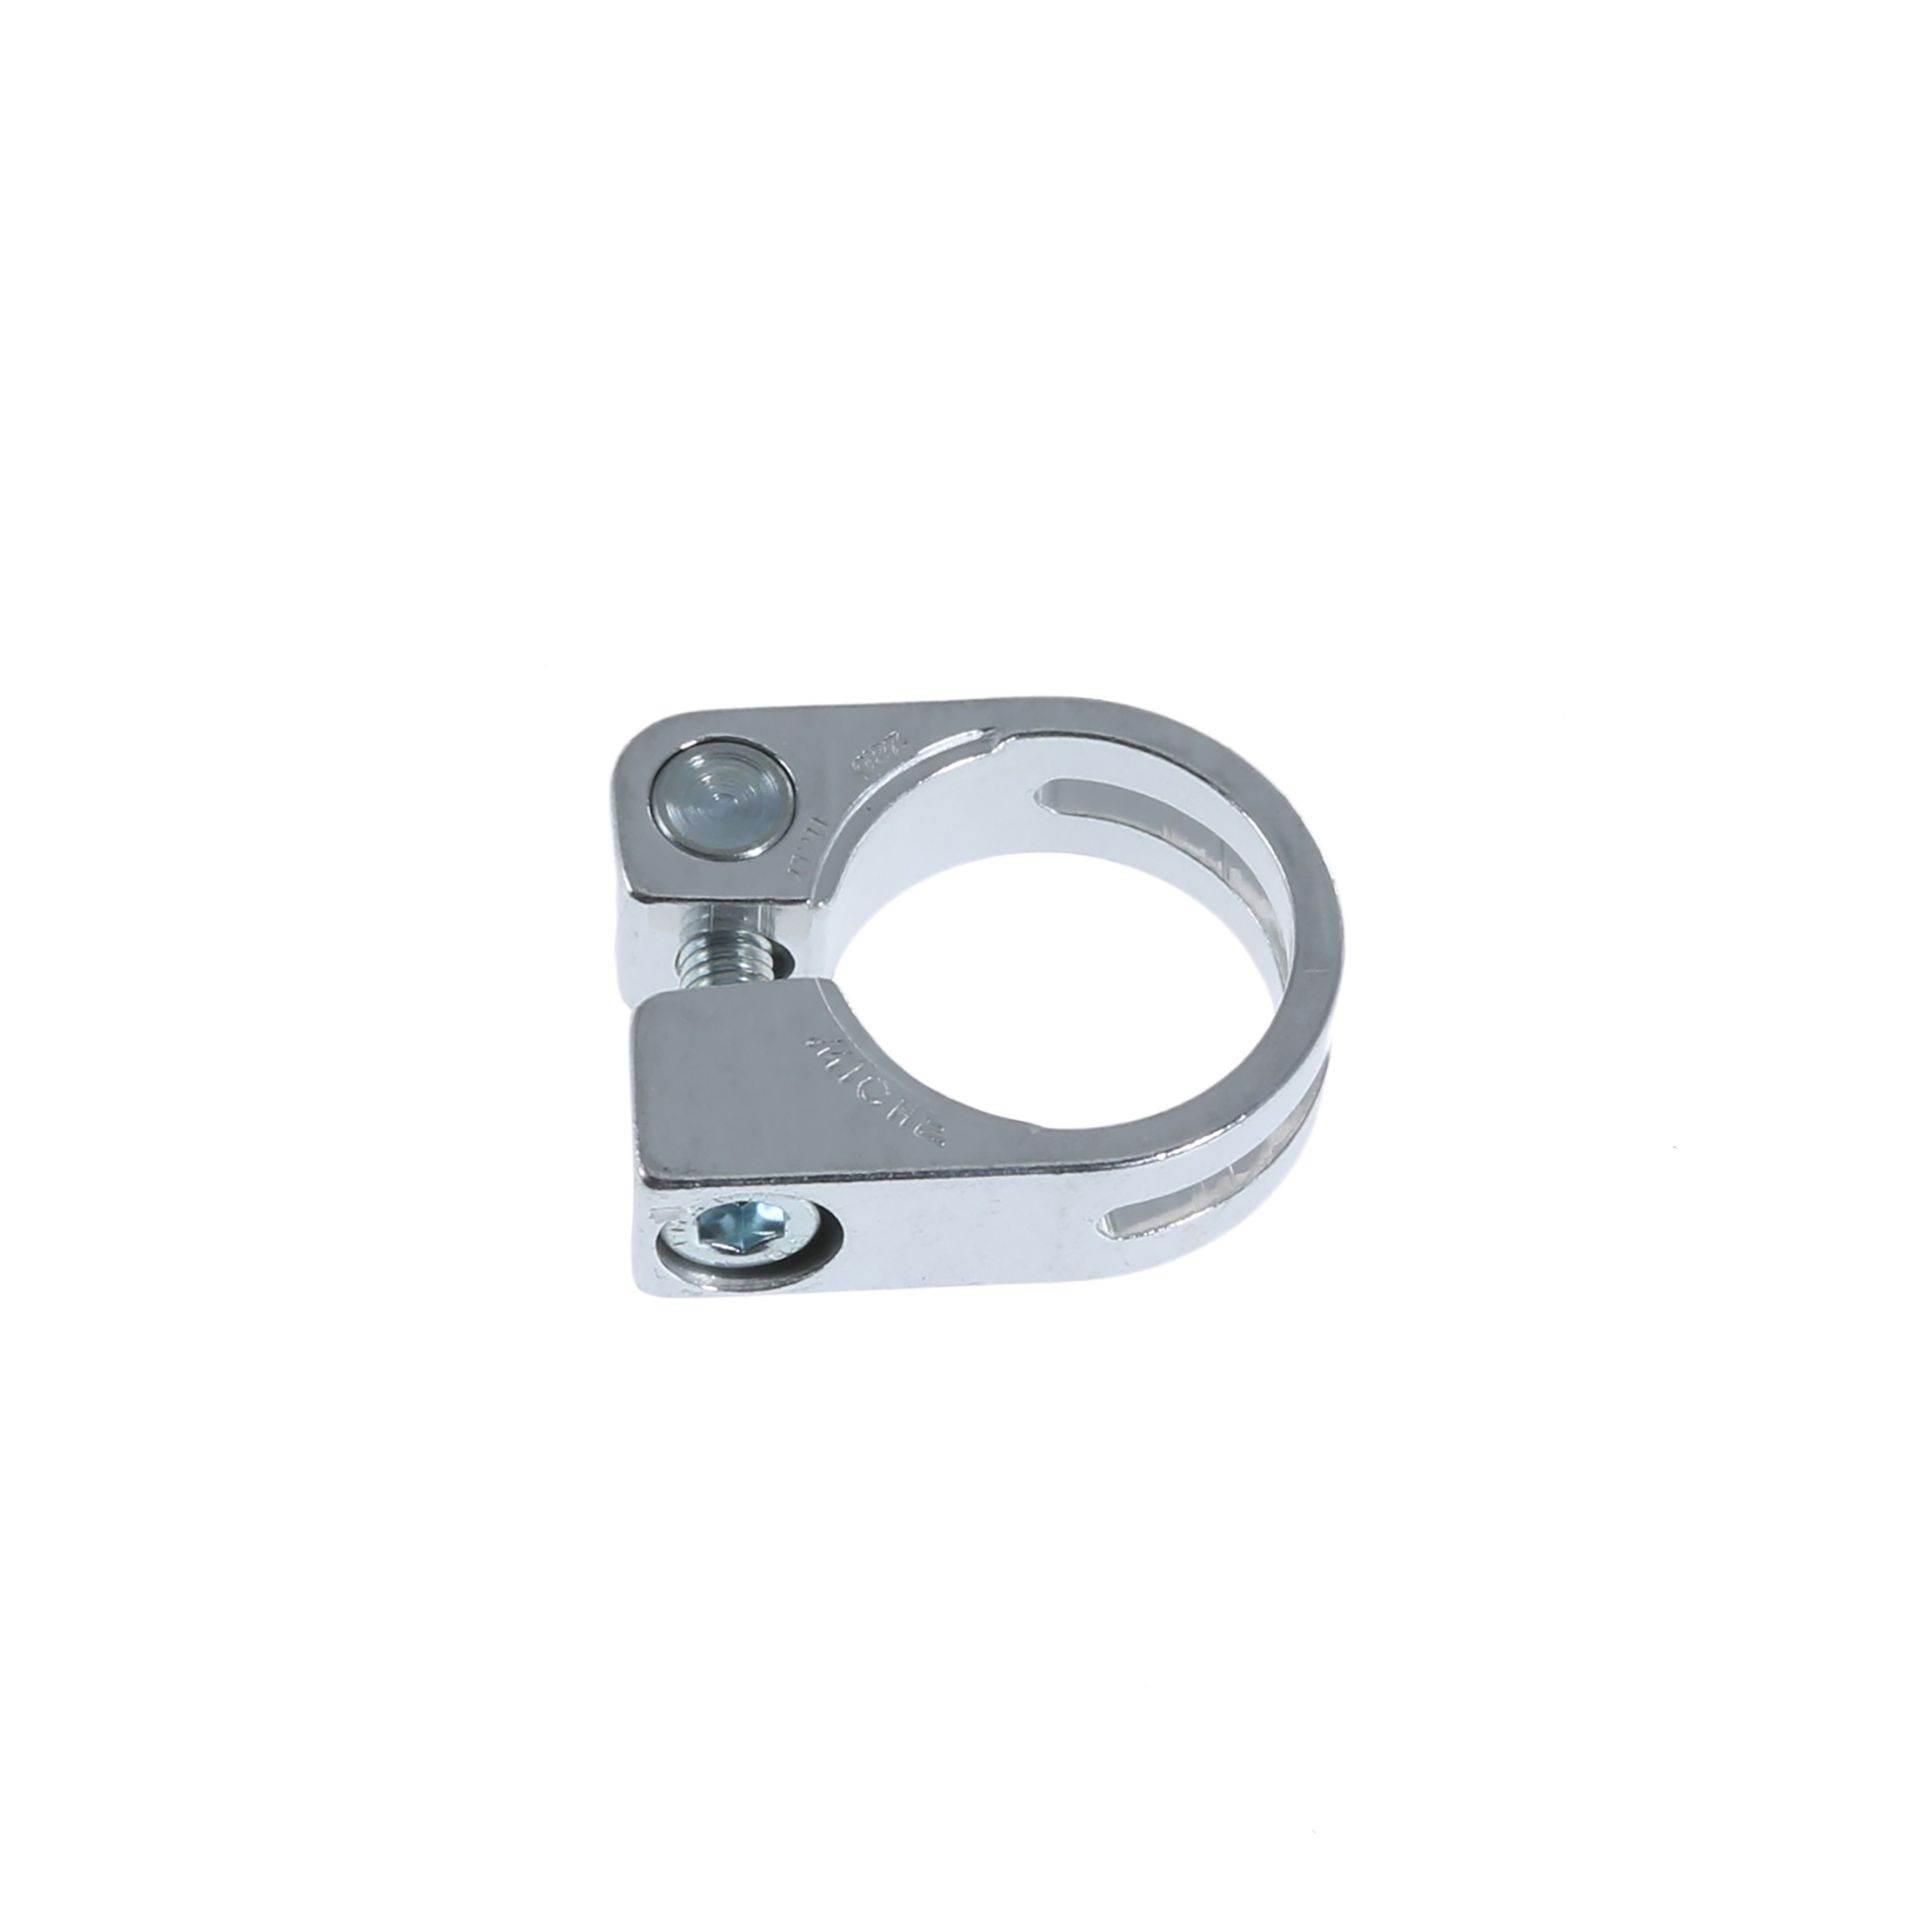 Collier de selle Miche Race Light Alu 28.6 mm à visser Argent